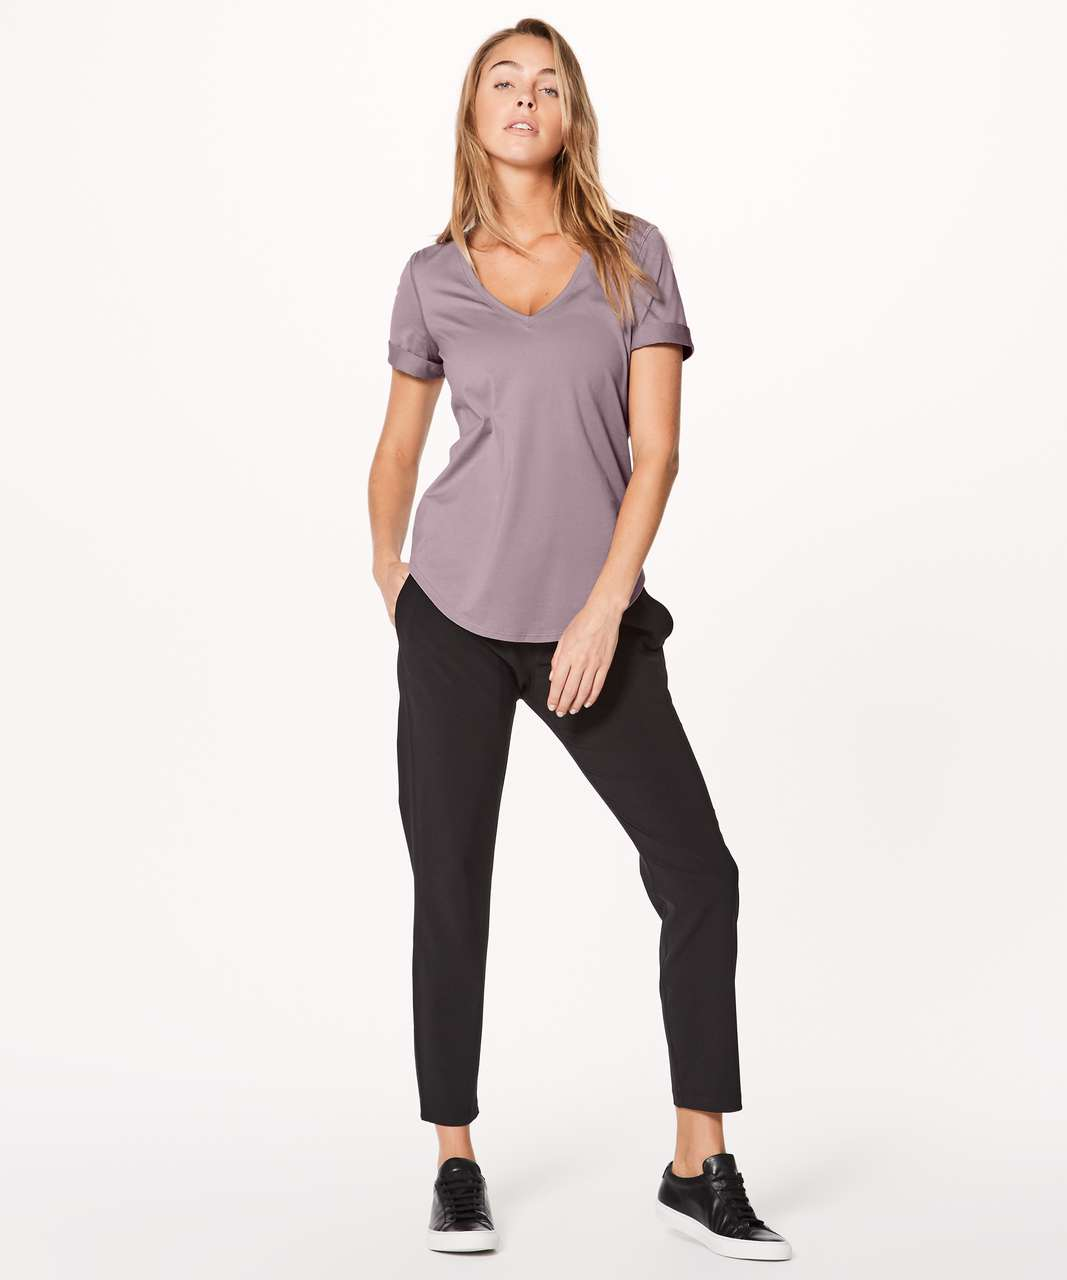 Lululemon Love Tee II - Misty Mauve